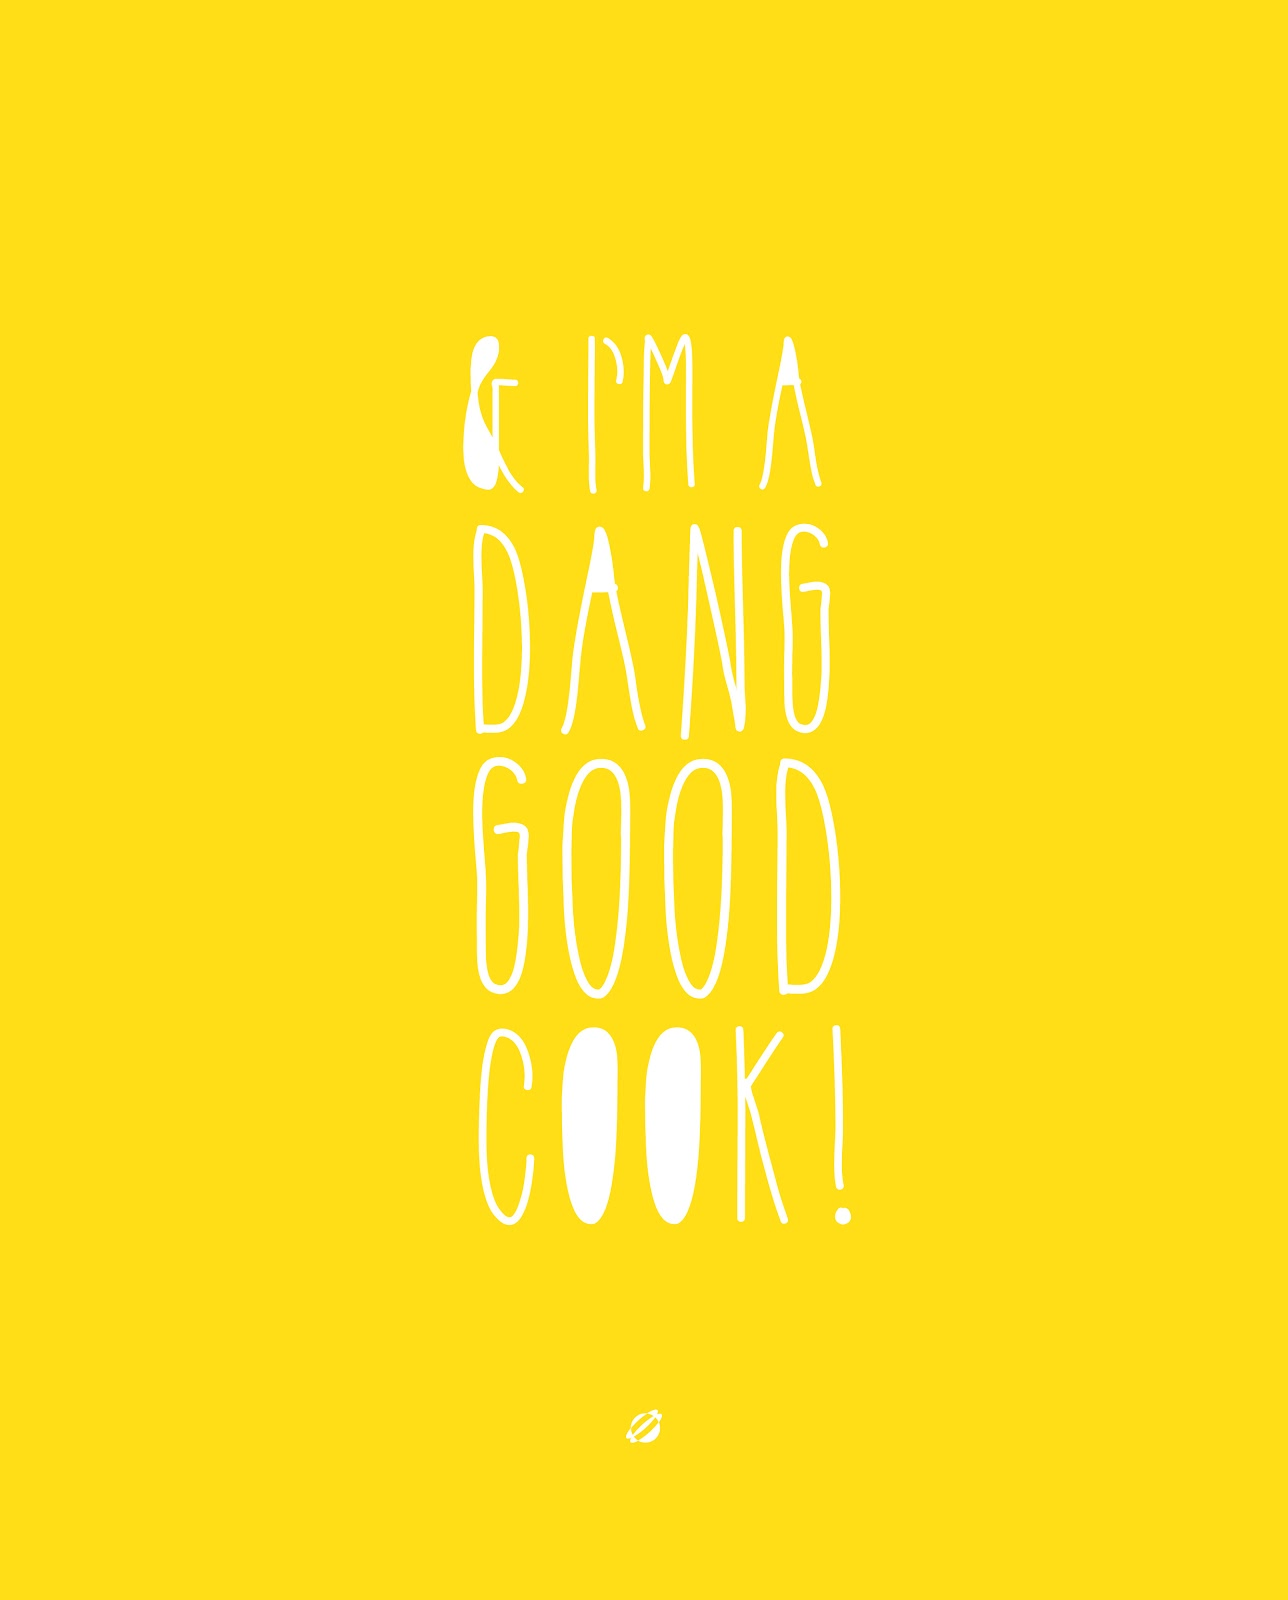 LostBumblebee ©2015 & I'm Dang good at it! : Free Printable : Personal Use Only.